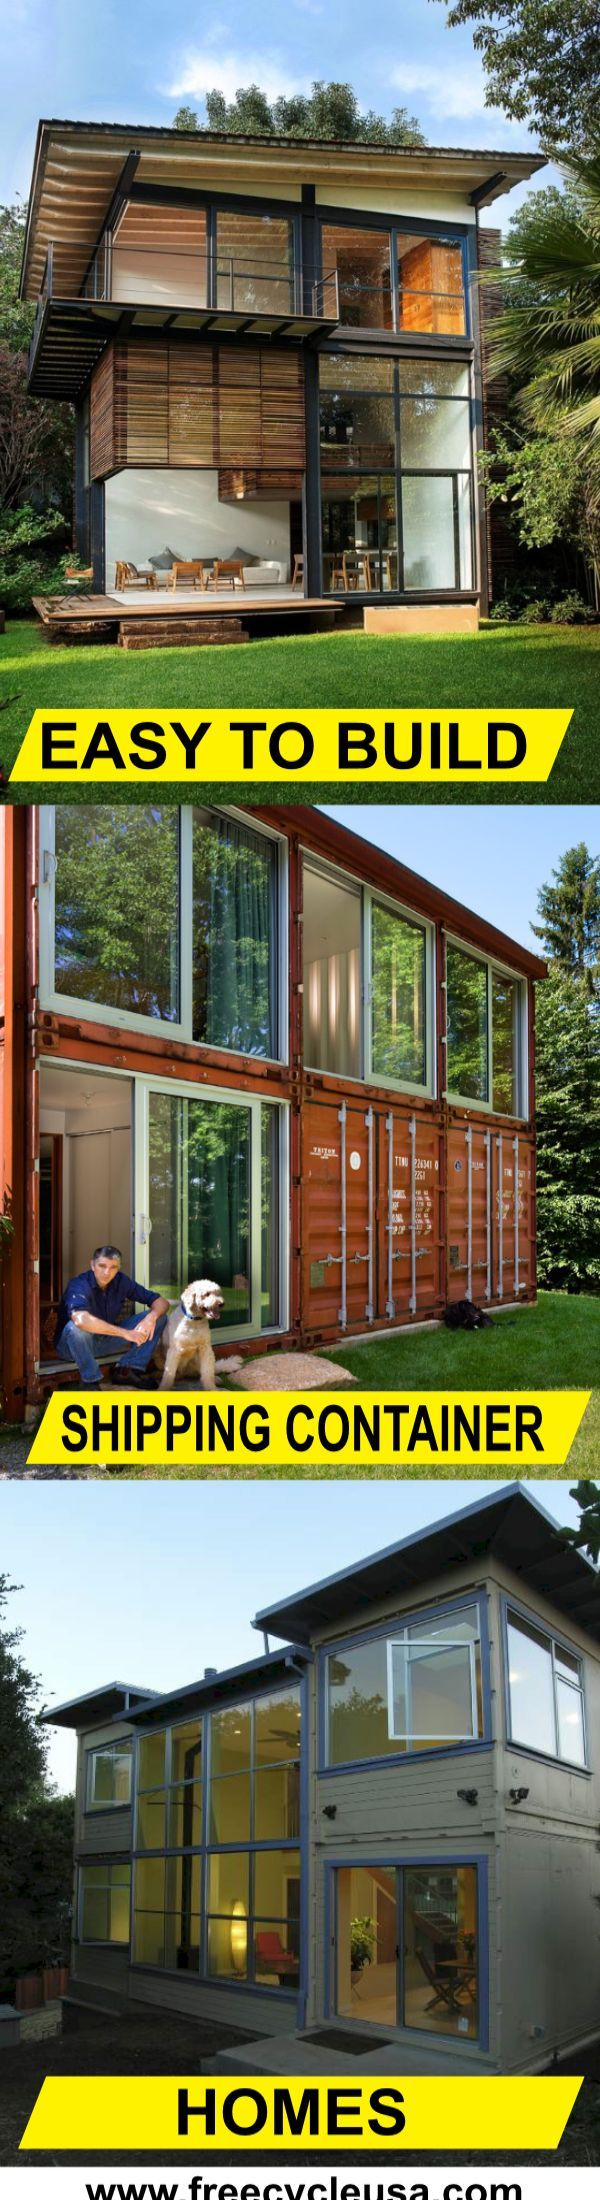 Best 25 shipping container homes ideas on pinterest container homes container houses and sea - How to build a home from a shipping container ...